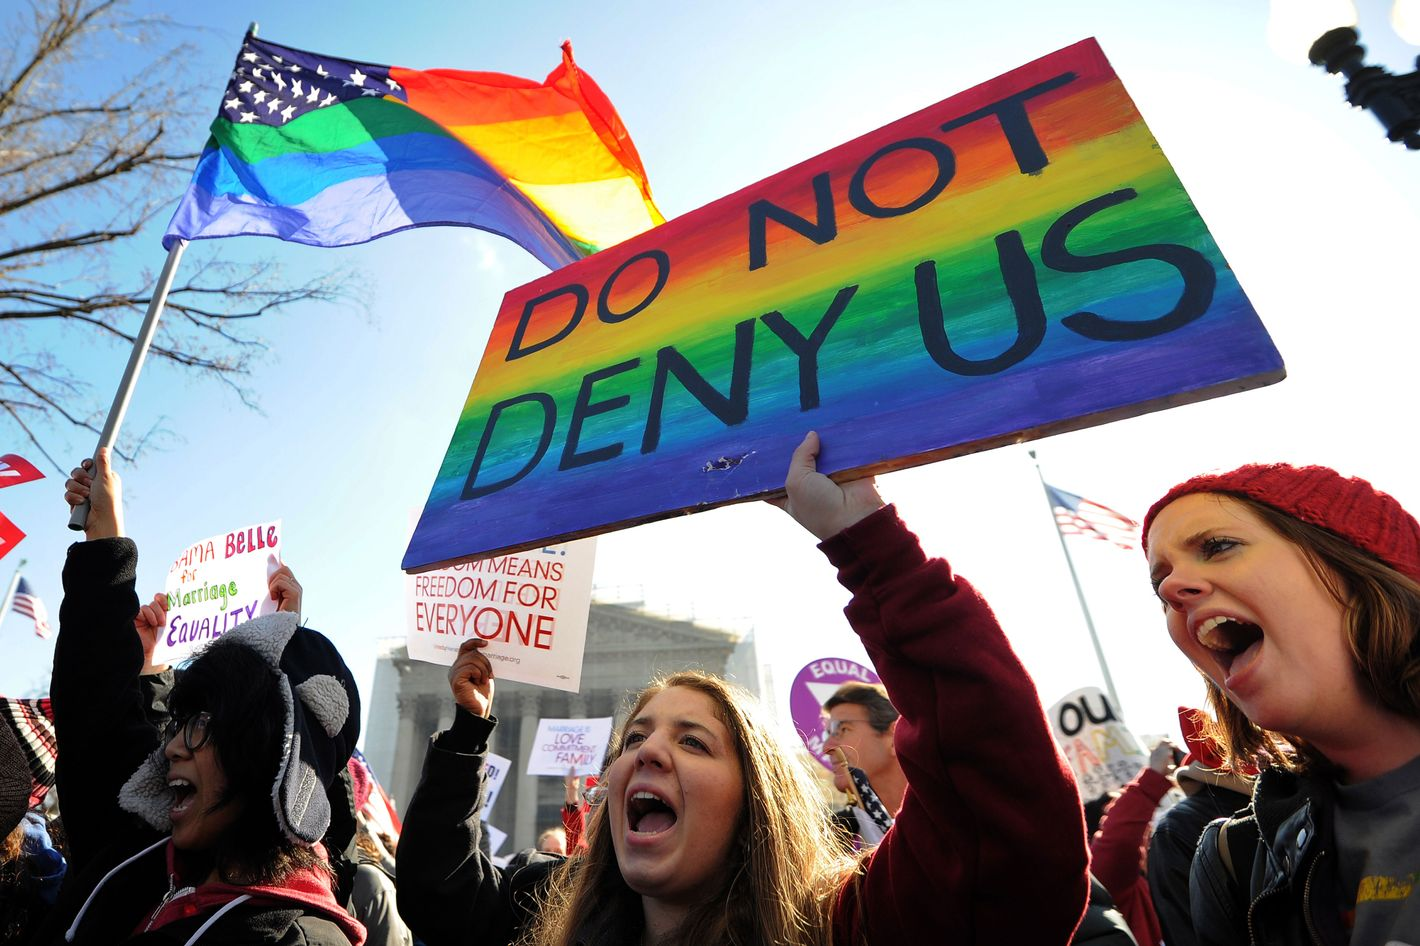 gay marriage is now legal across the entire northeast